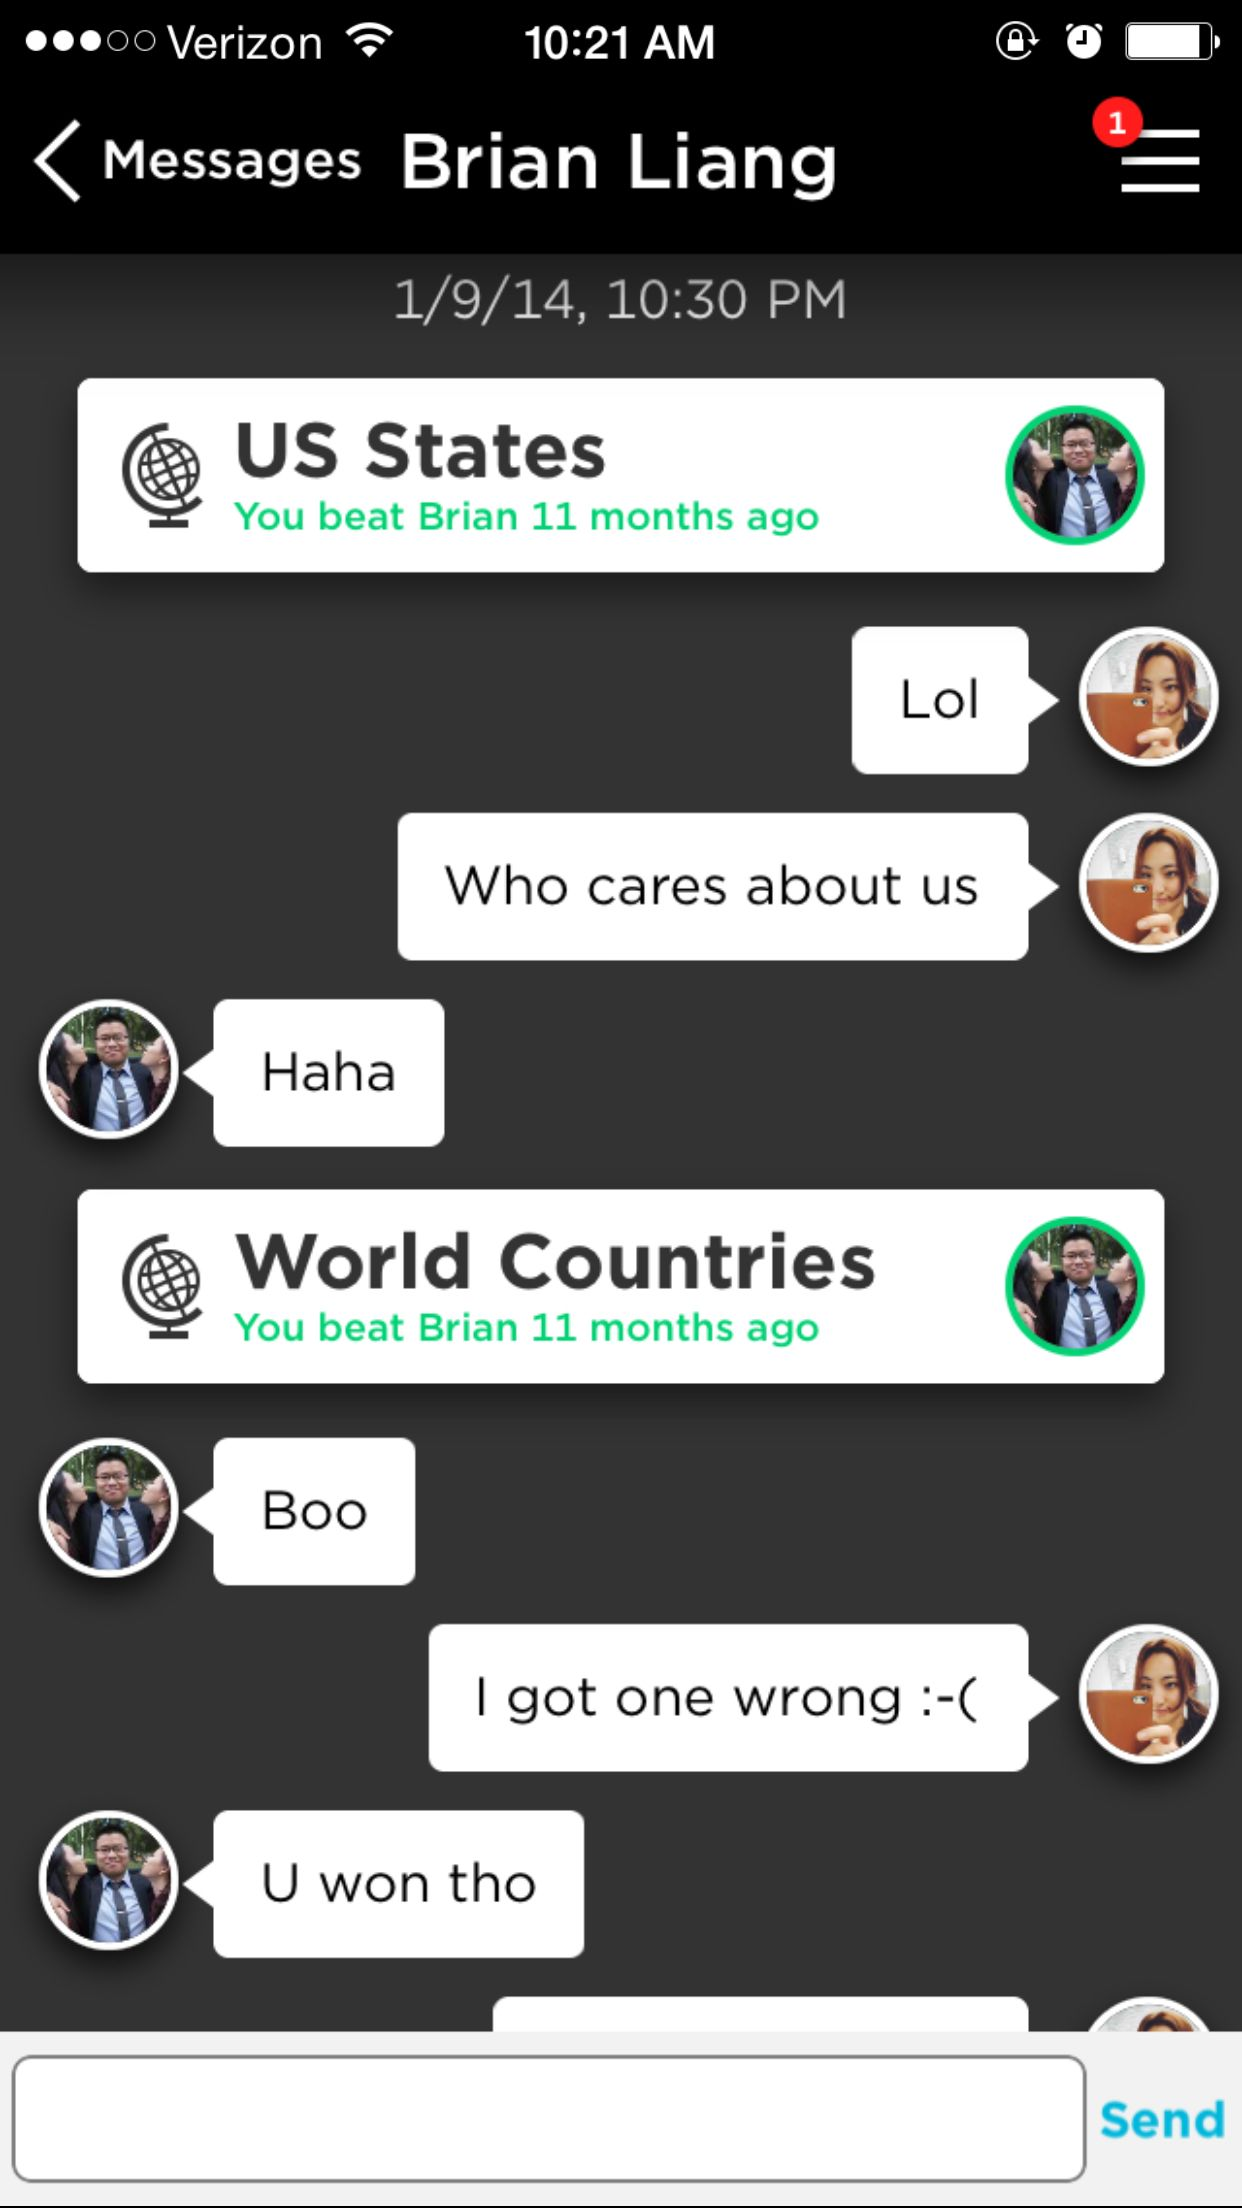 Quizup  Shows major game events between the opponent and me